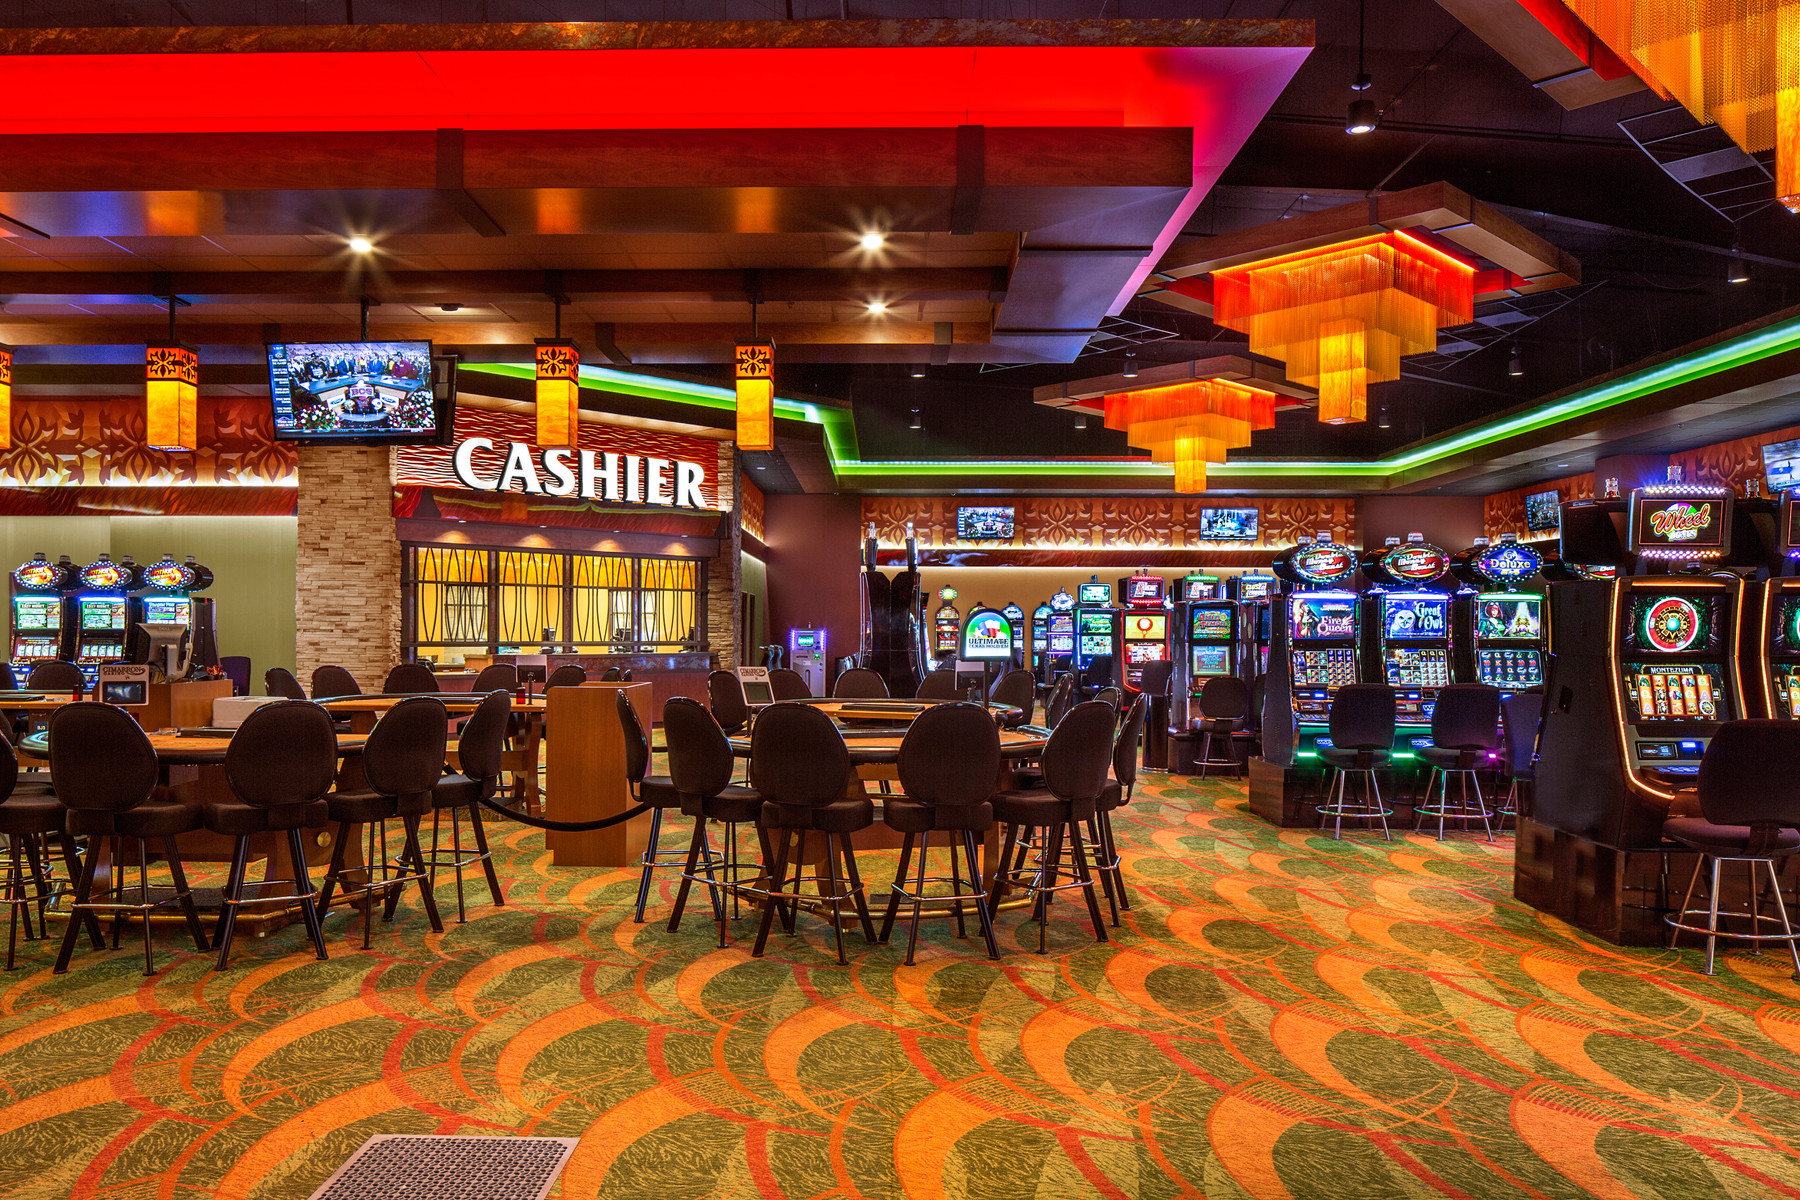 Committee approves regulations for sports wagering, online games